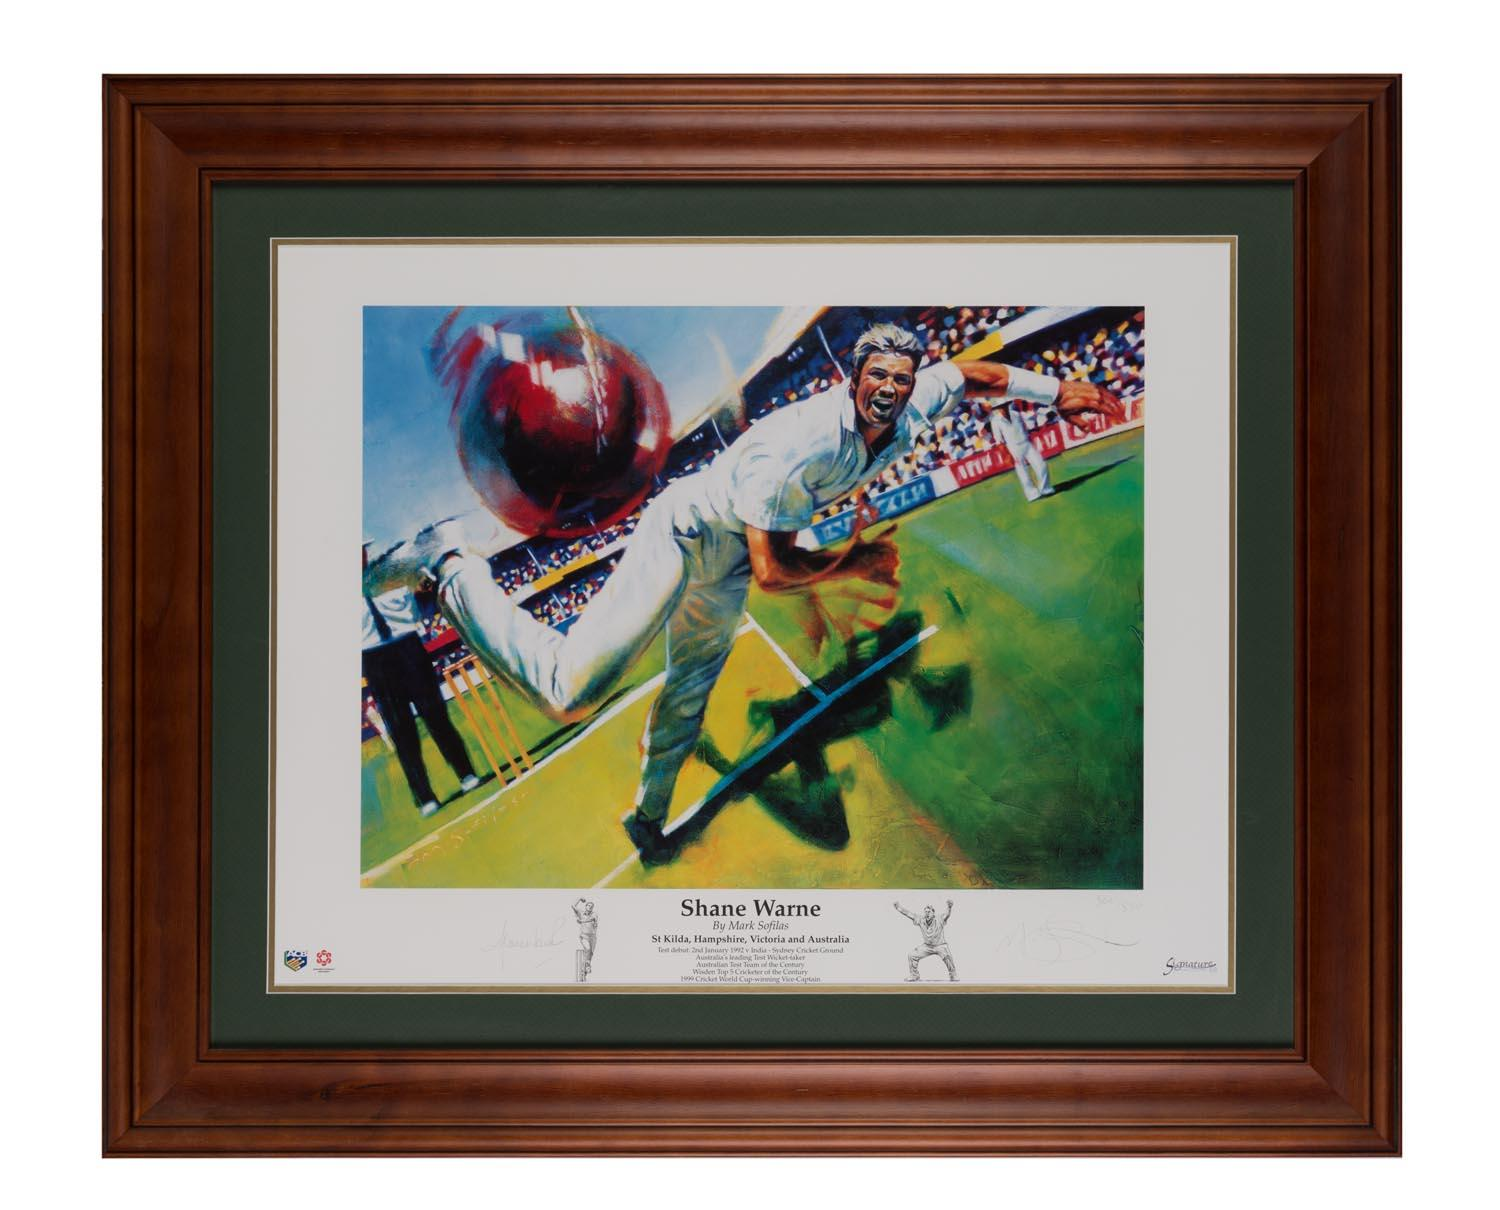 """Shane Warne"" by Mark Sofilas, Hand Signed by Shane Warne and the Artist, Framed"